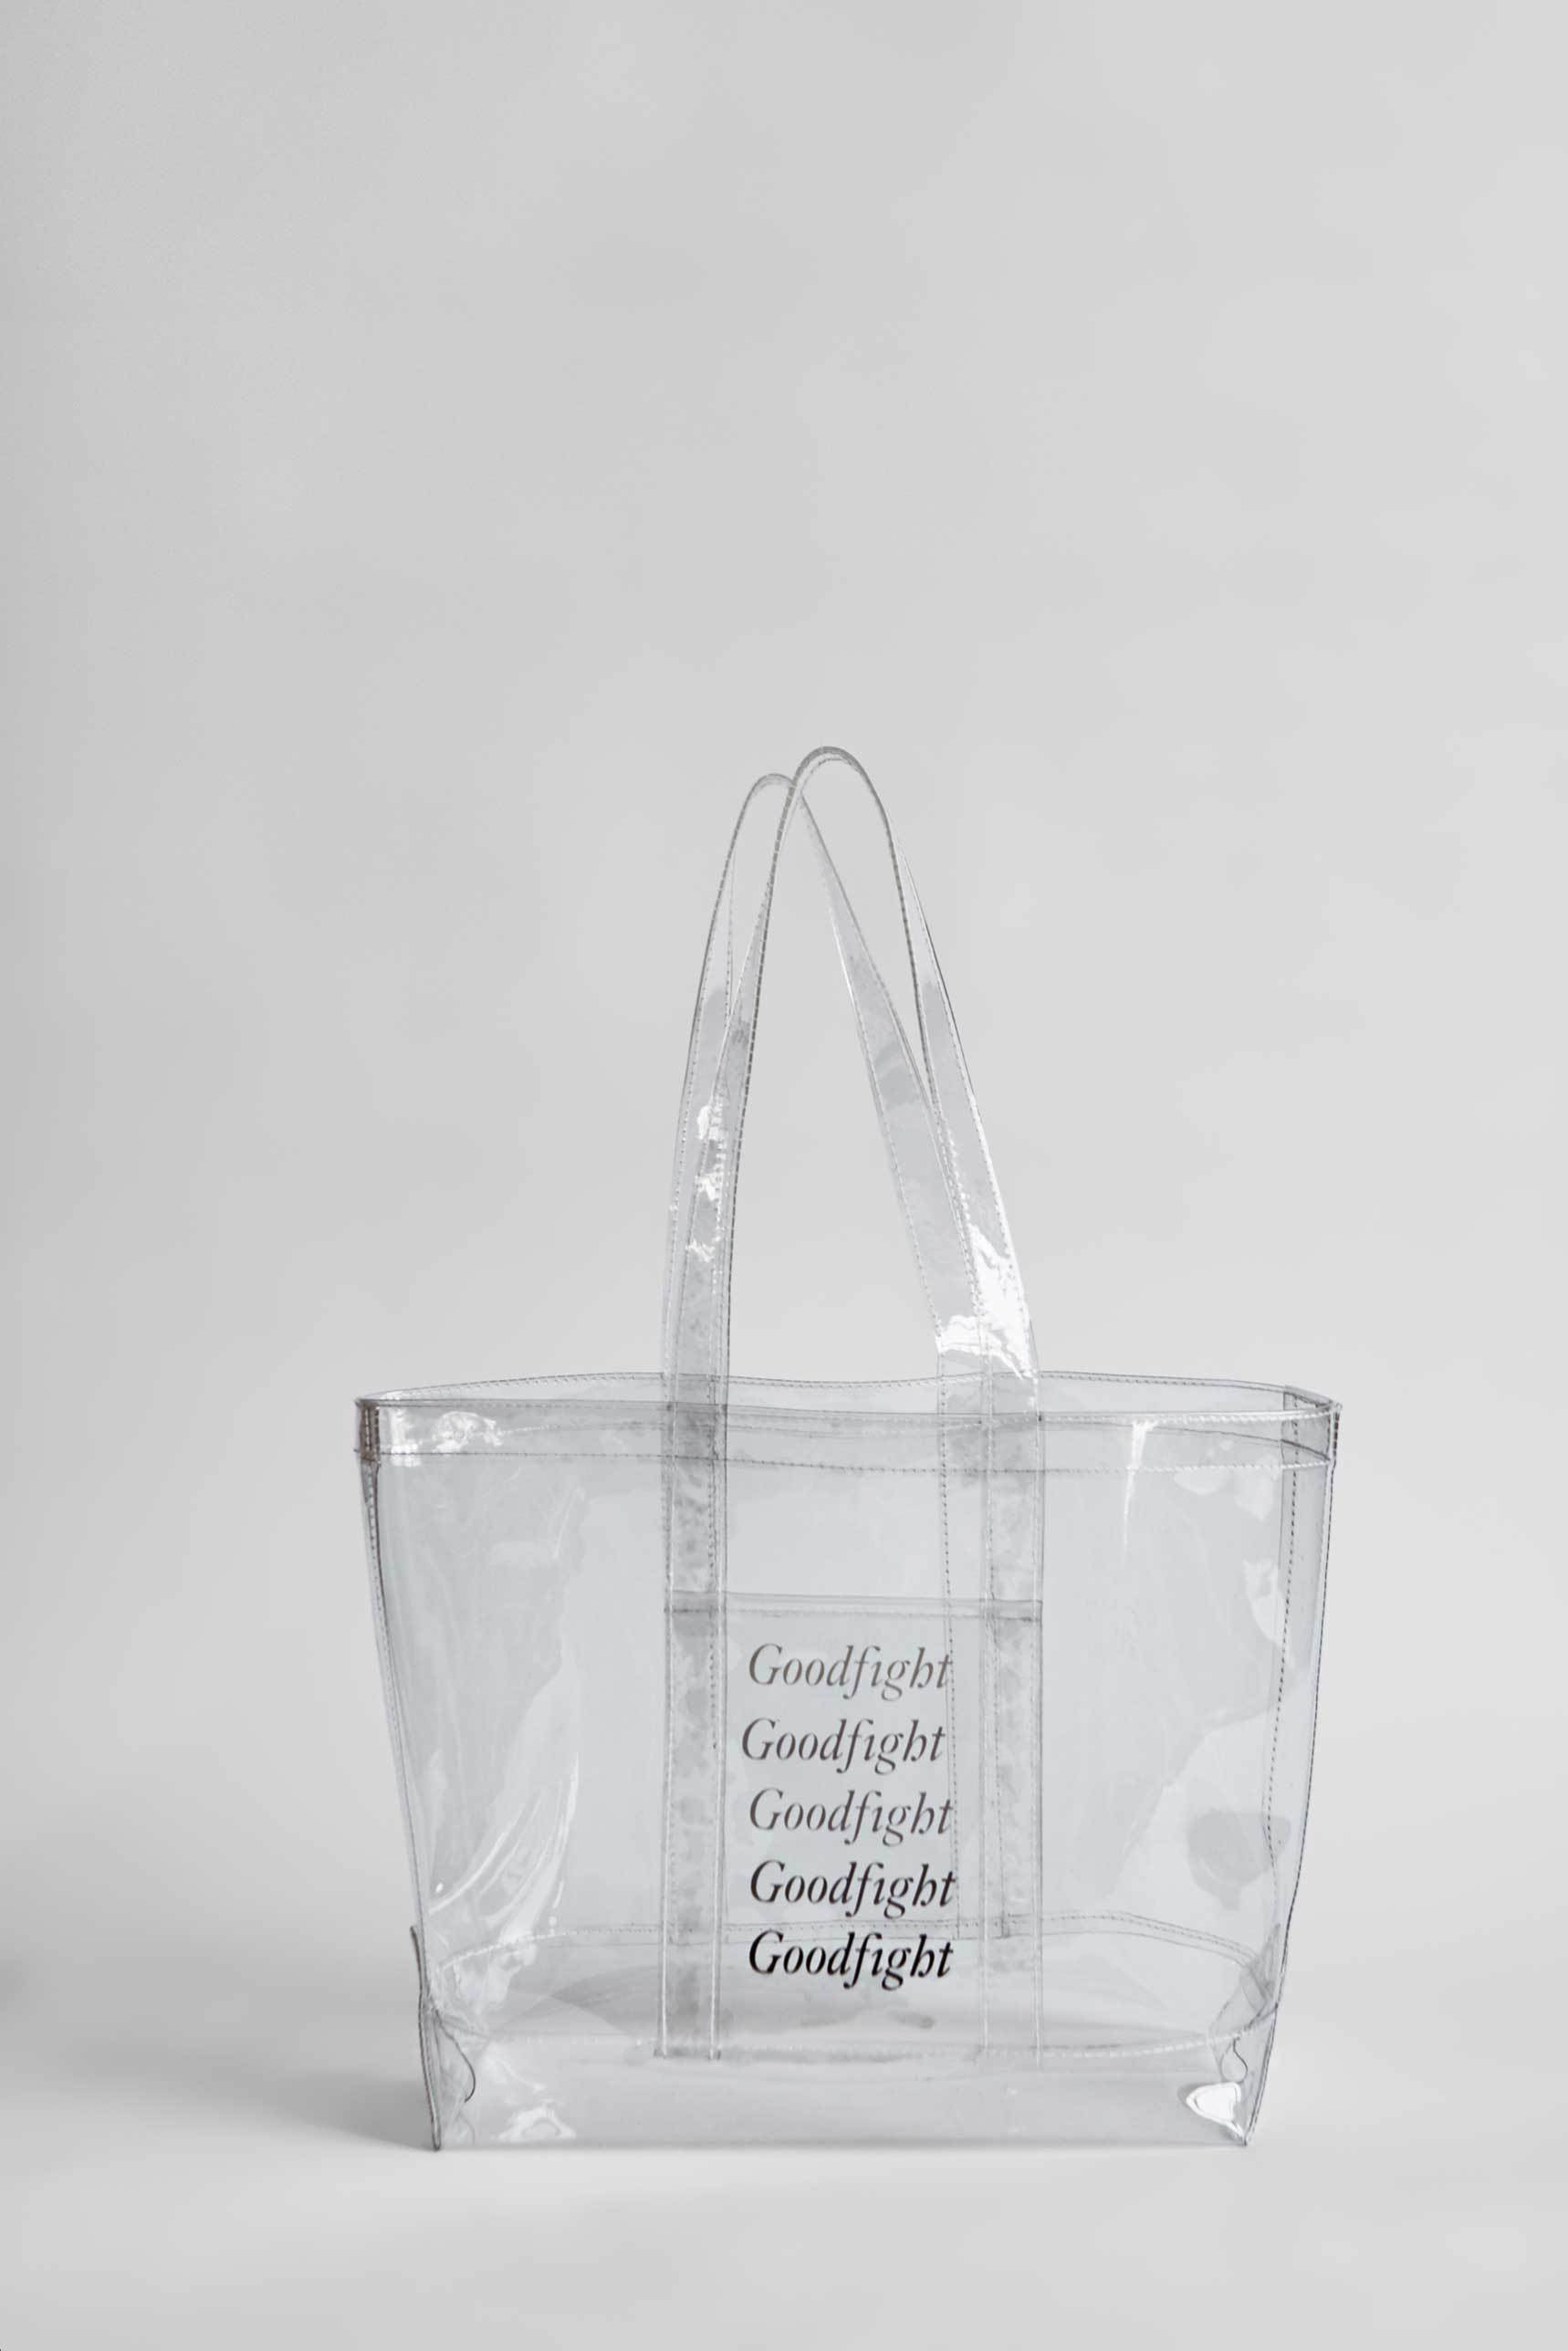 Goodfight Double Pane Tote Bag Clear